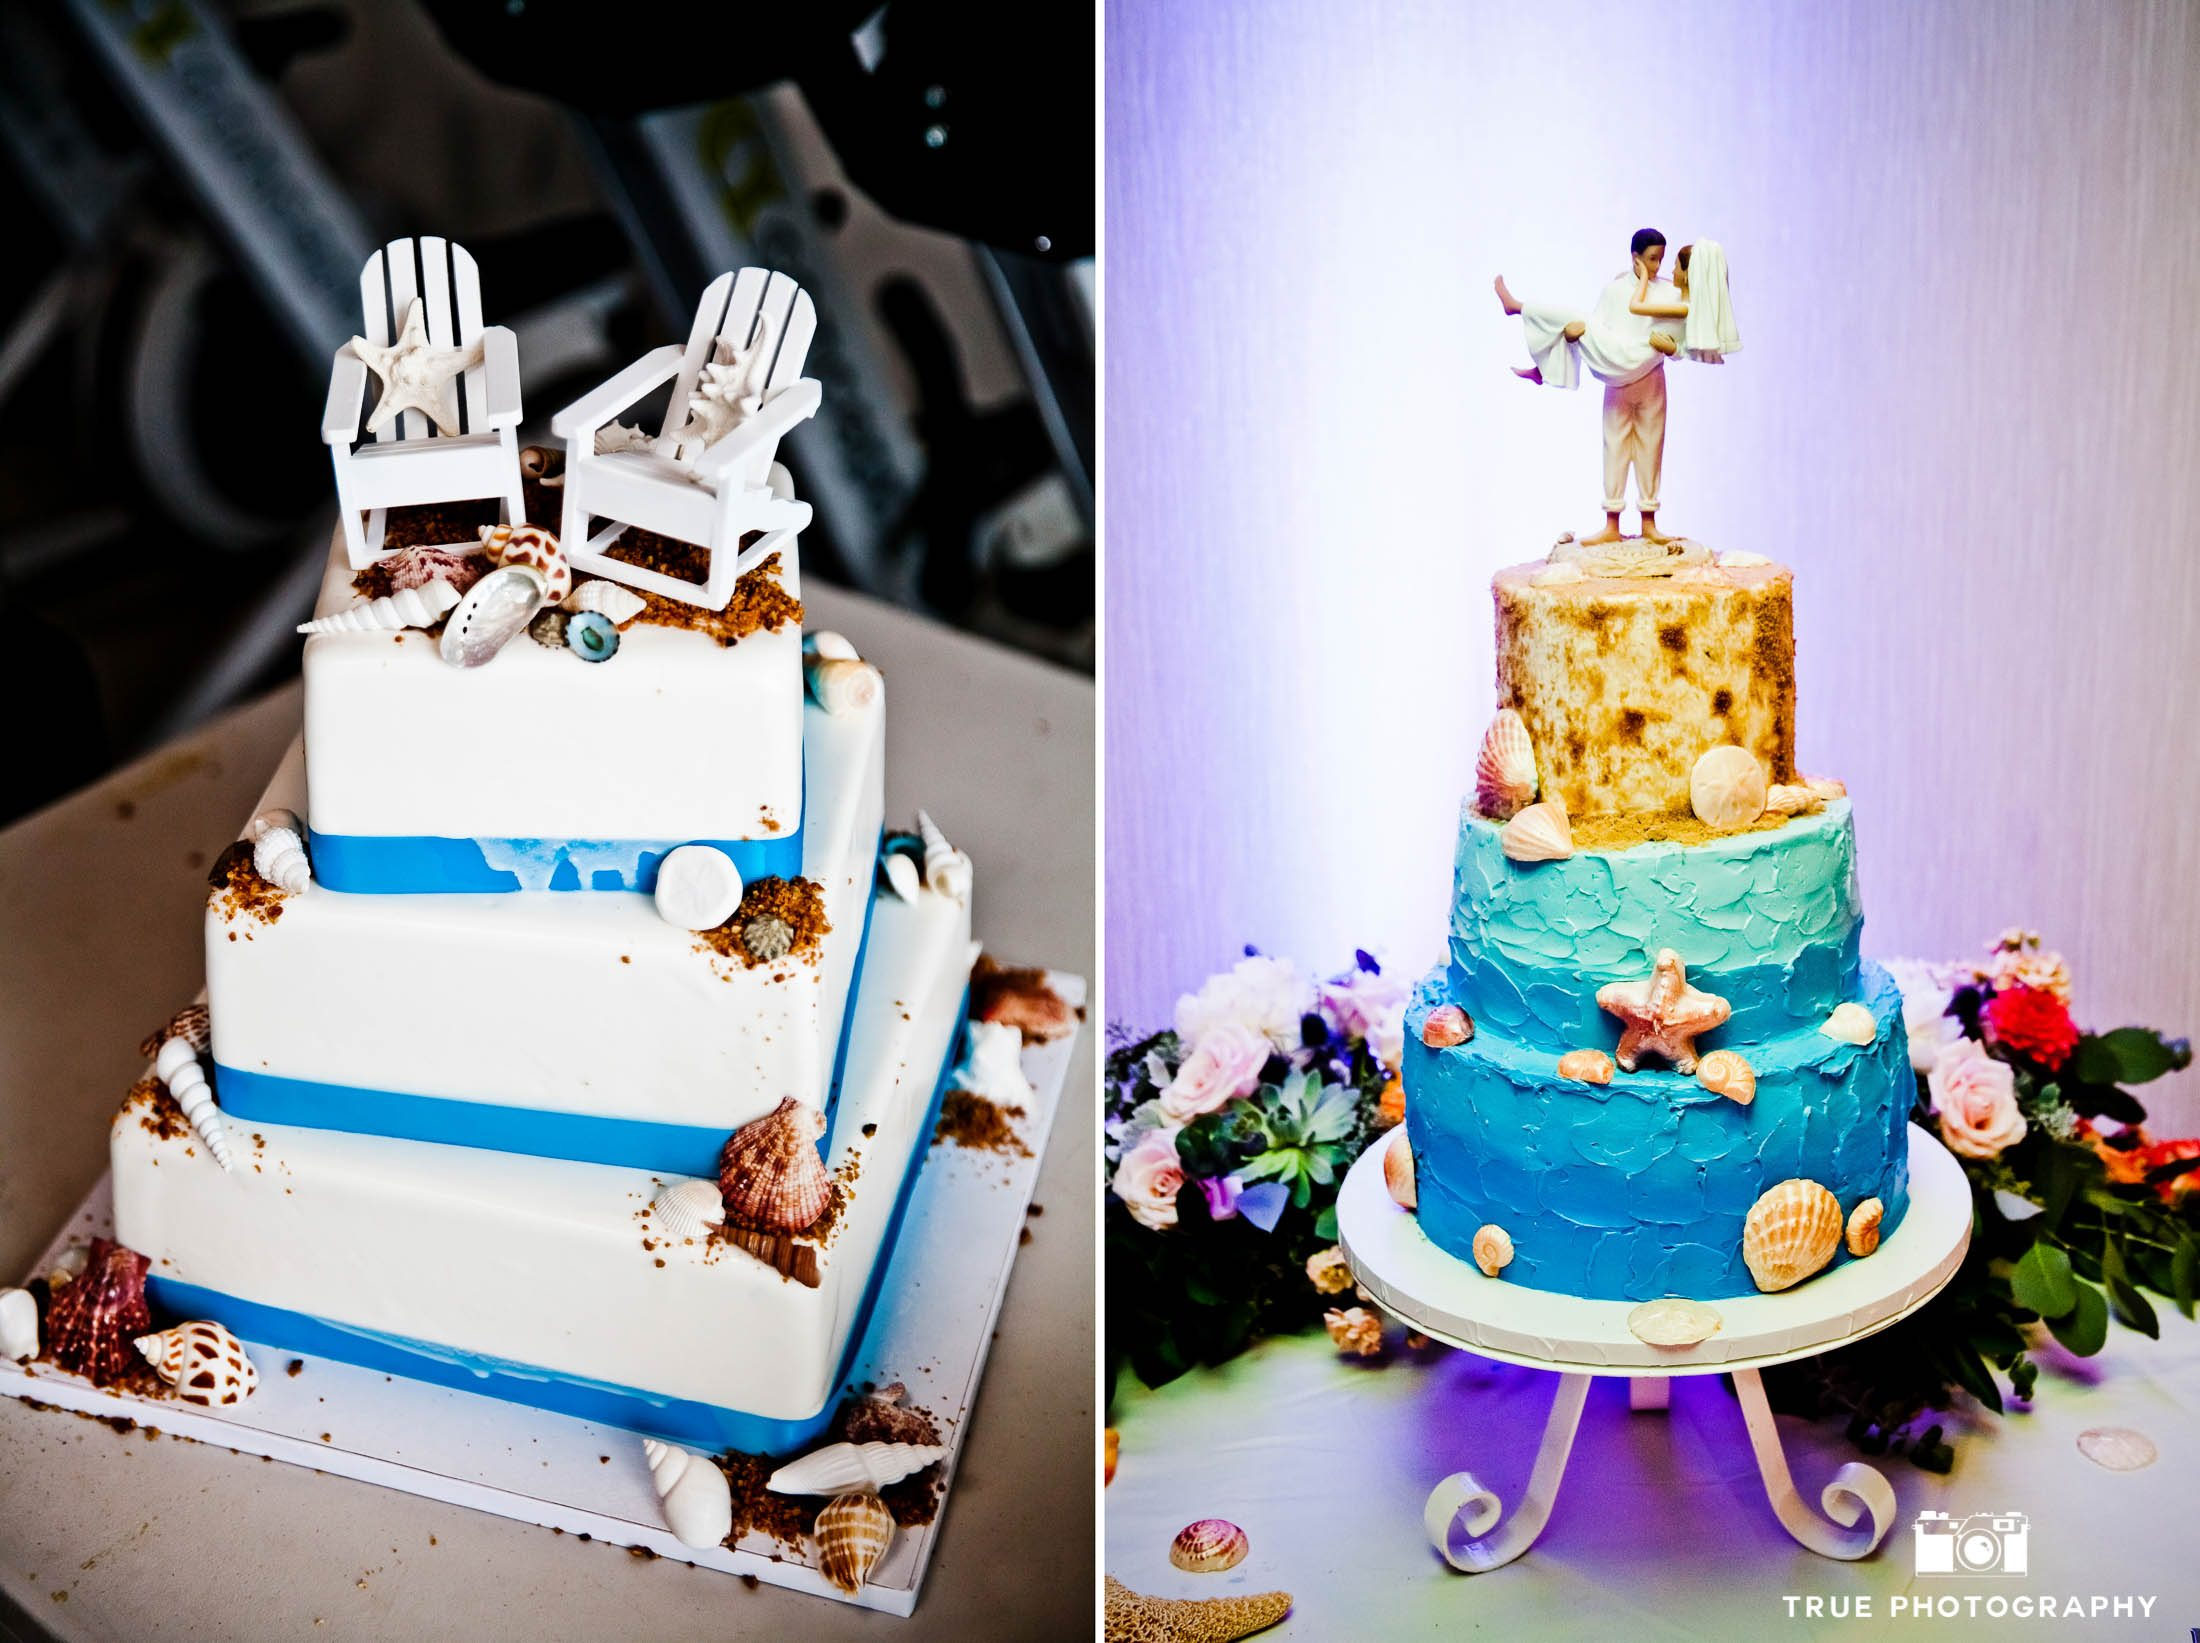 Creative, beach-inspired wedding cake toppers with chairs and sand